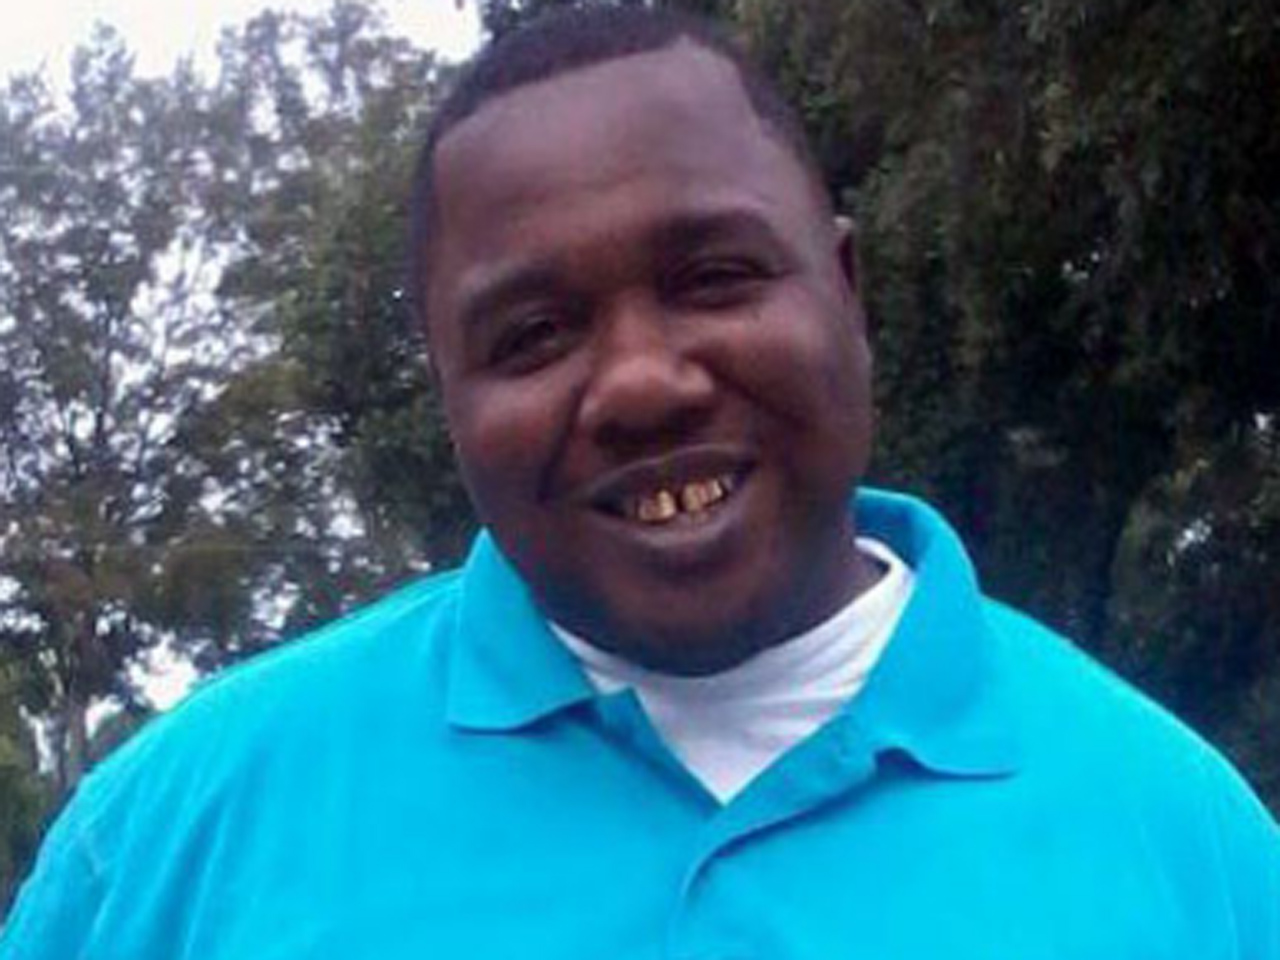 Latest on the Alton Sterling shooting investigation - CBS News